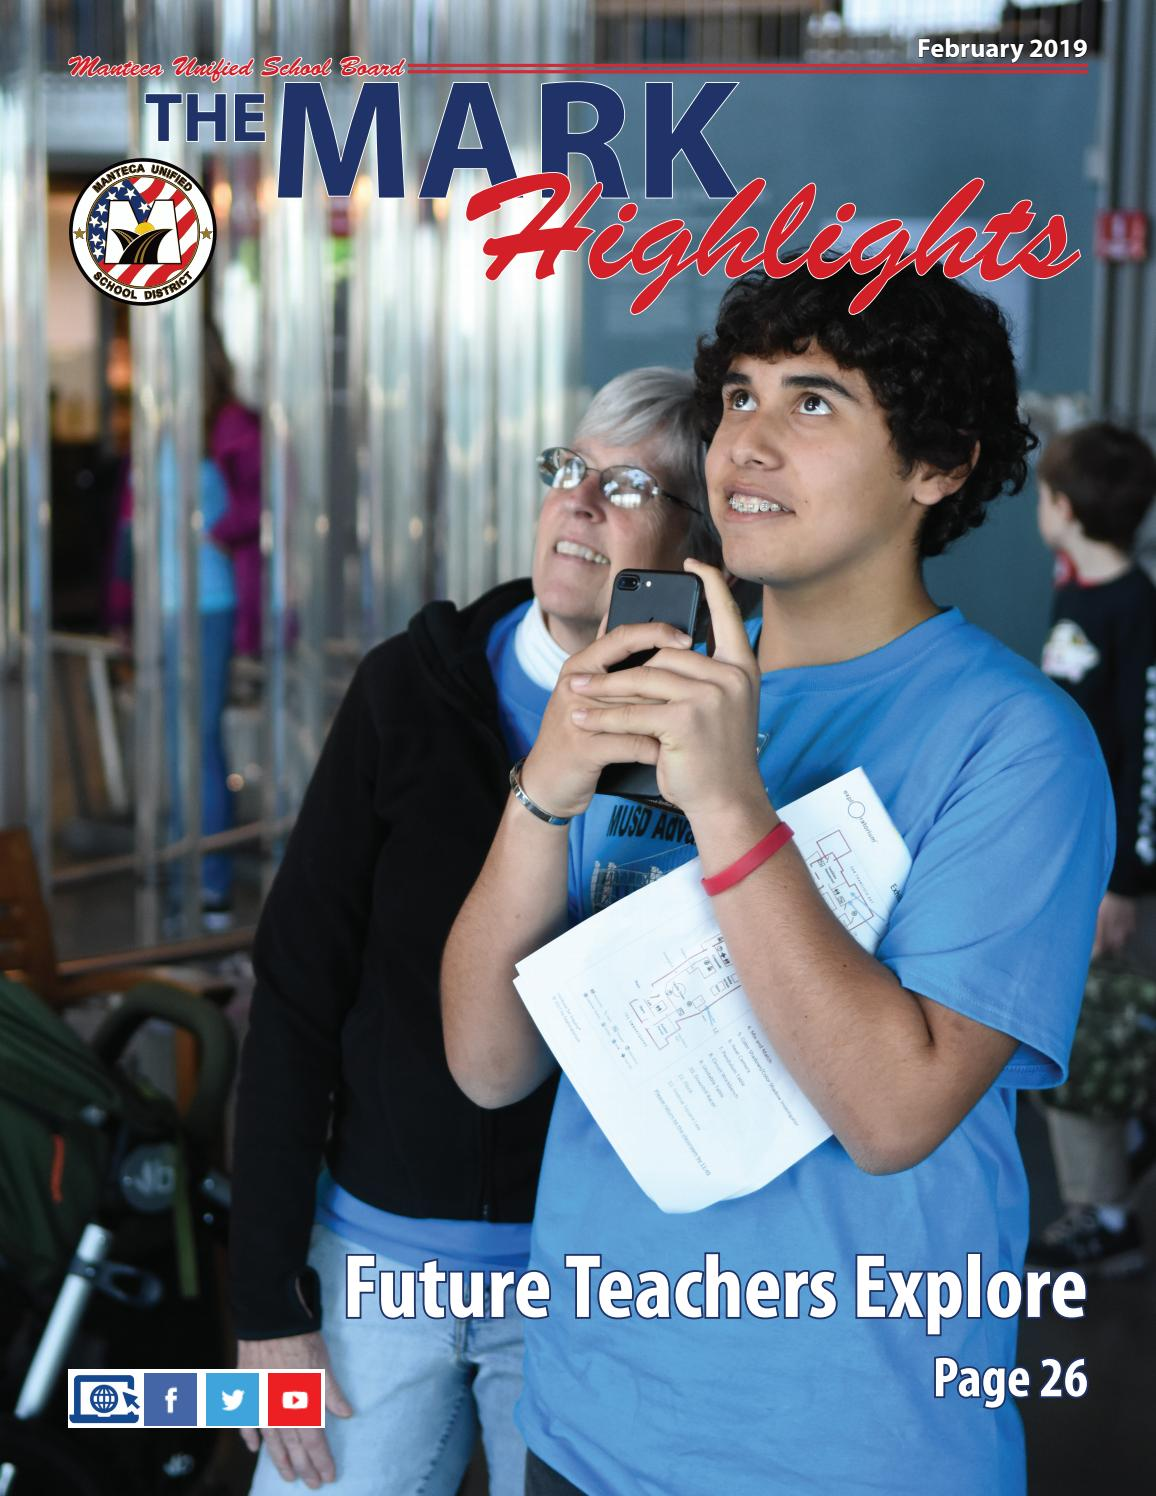 Expo Stands Lightsee : Mark highlights february 2019 by manteca unified school district issuu